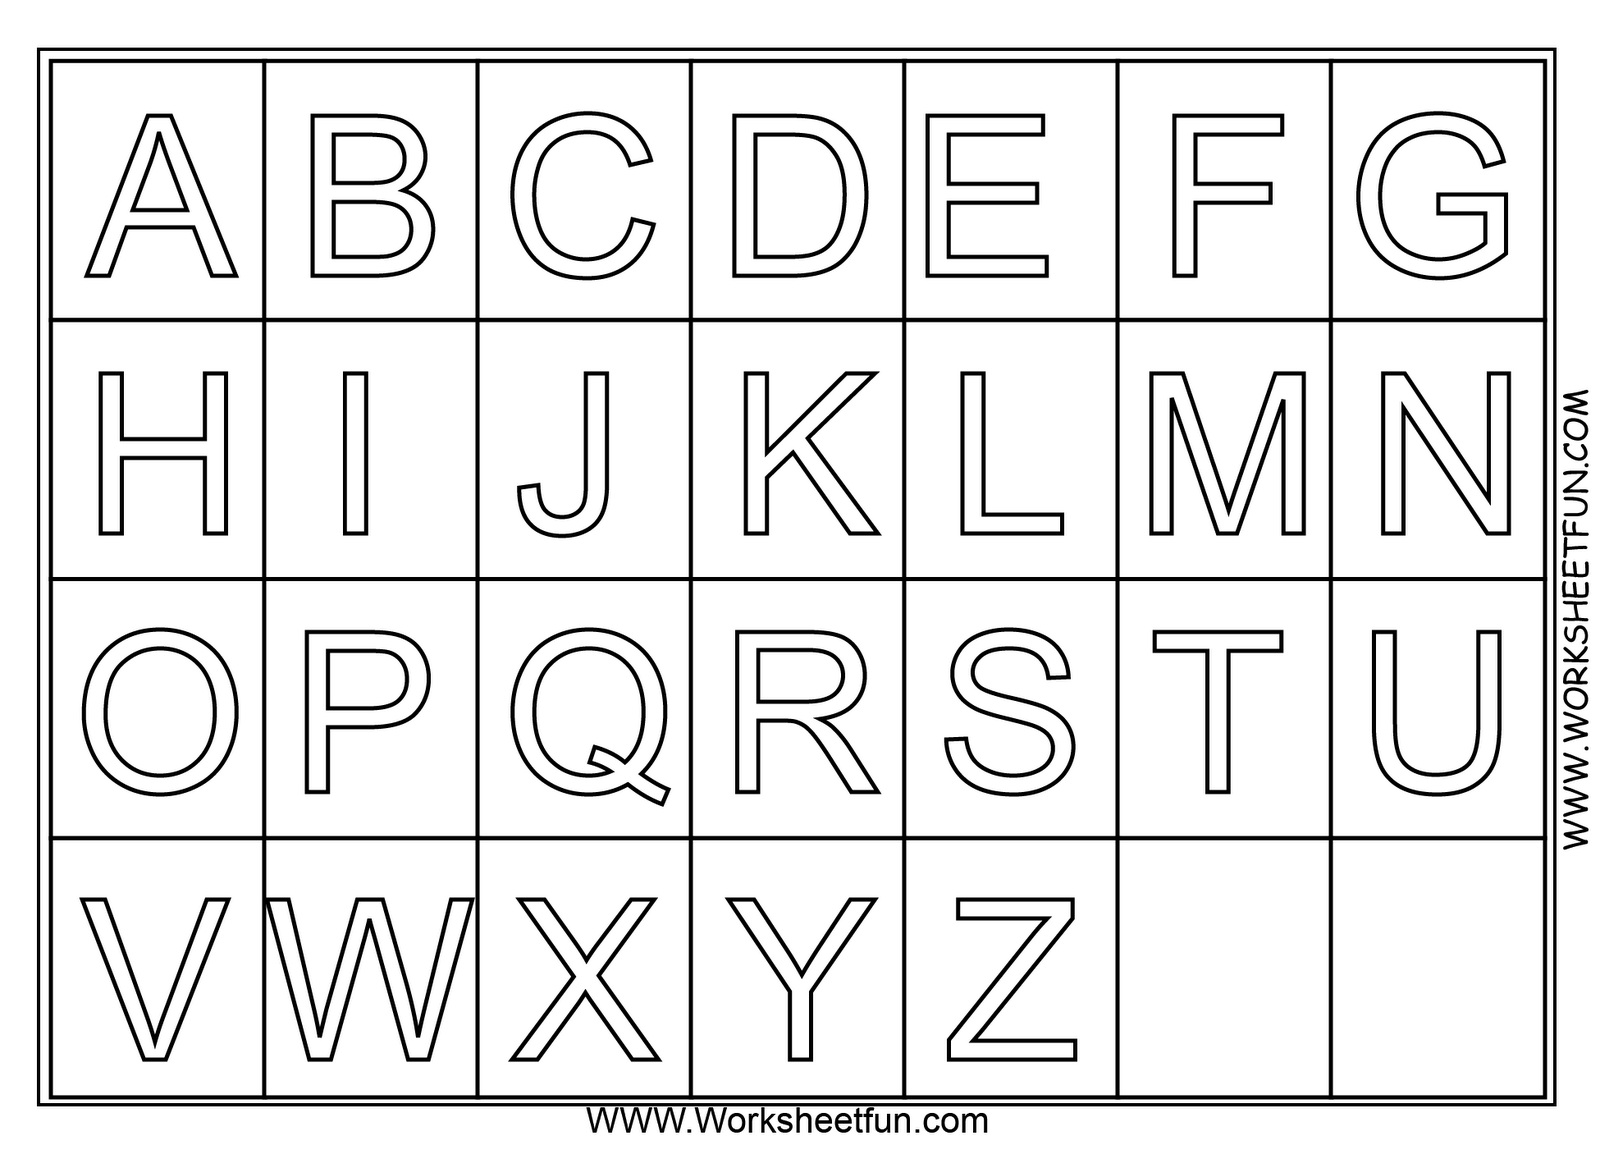 alphabet coloring pages for preschoolers a z alphabet coloring pages download and print for free preschoolers coloring pages for alphabet